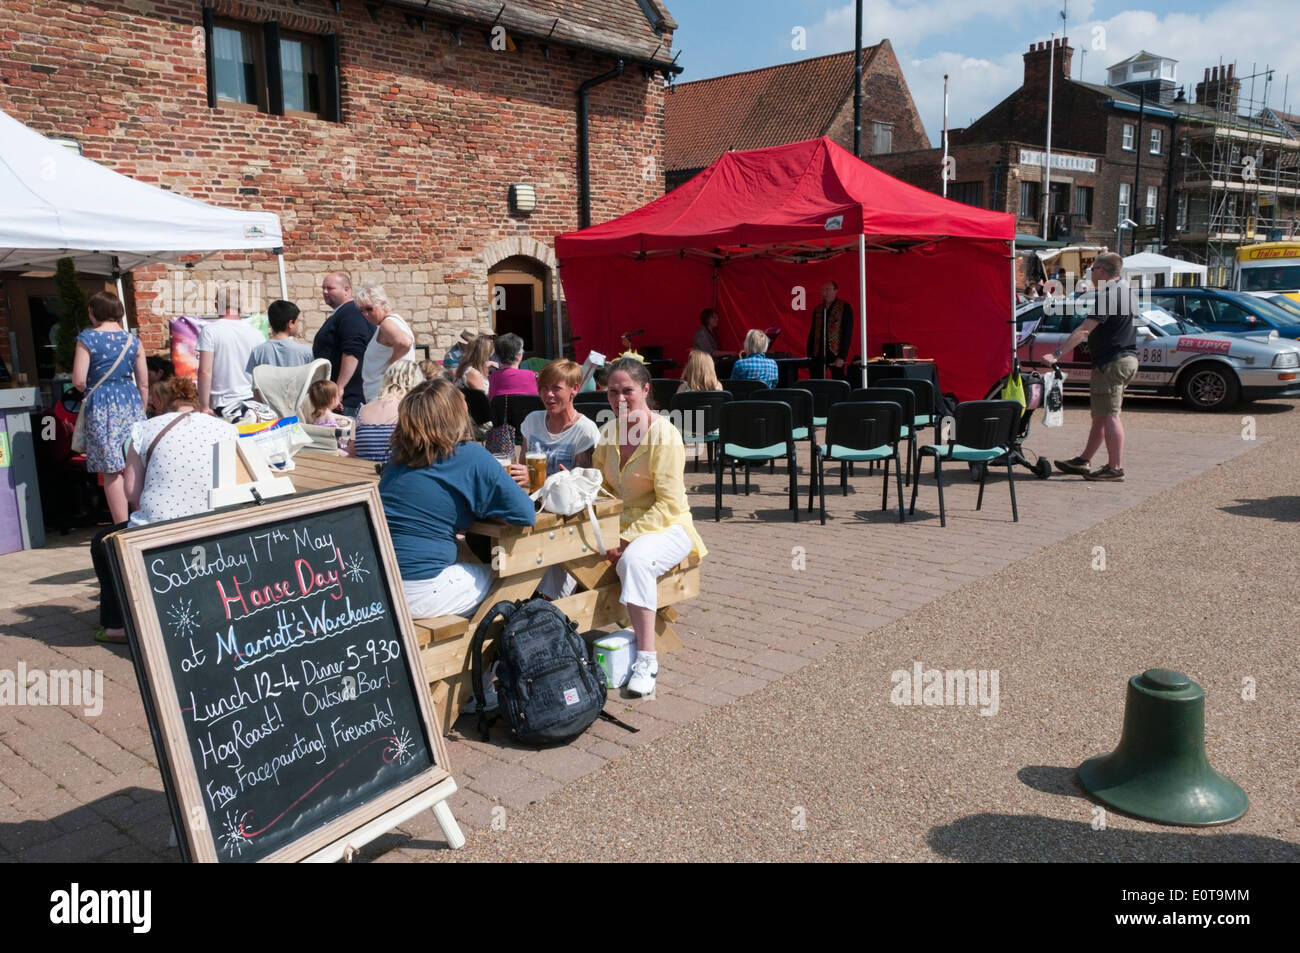 People sitting outside Marriott's Warehouse on the South Quay, King's Lynn, enjoying the sun during the Hanse Festival. - Stock Image